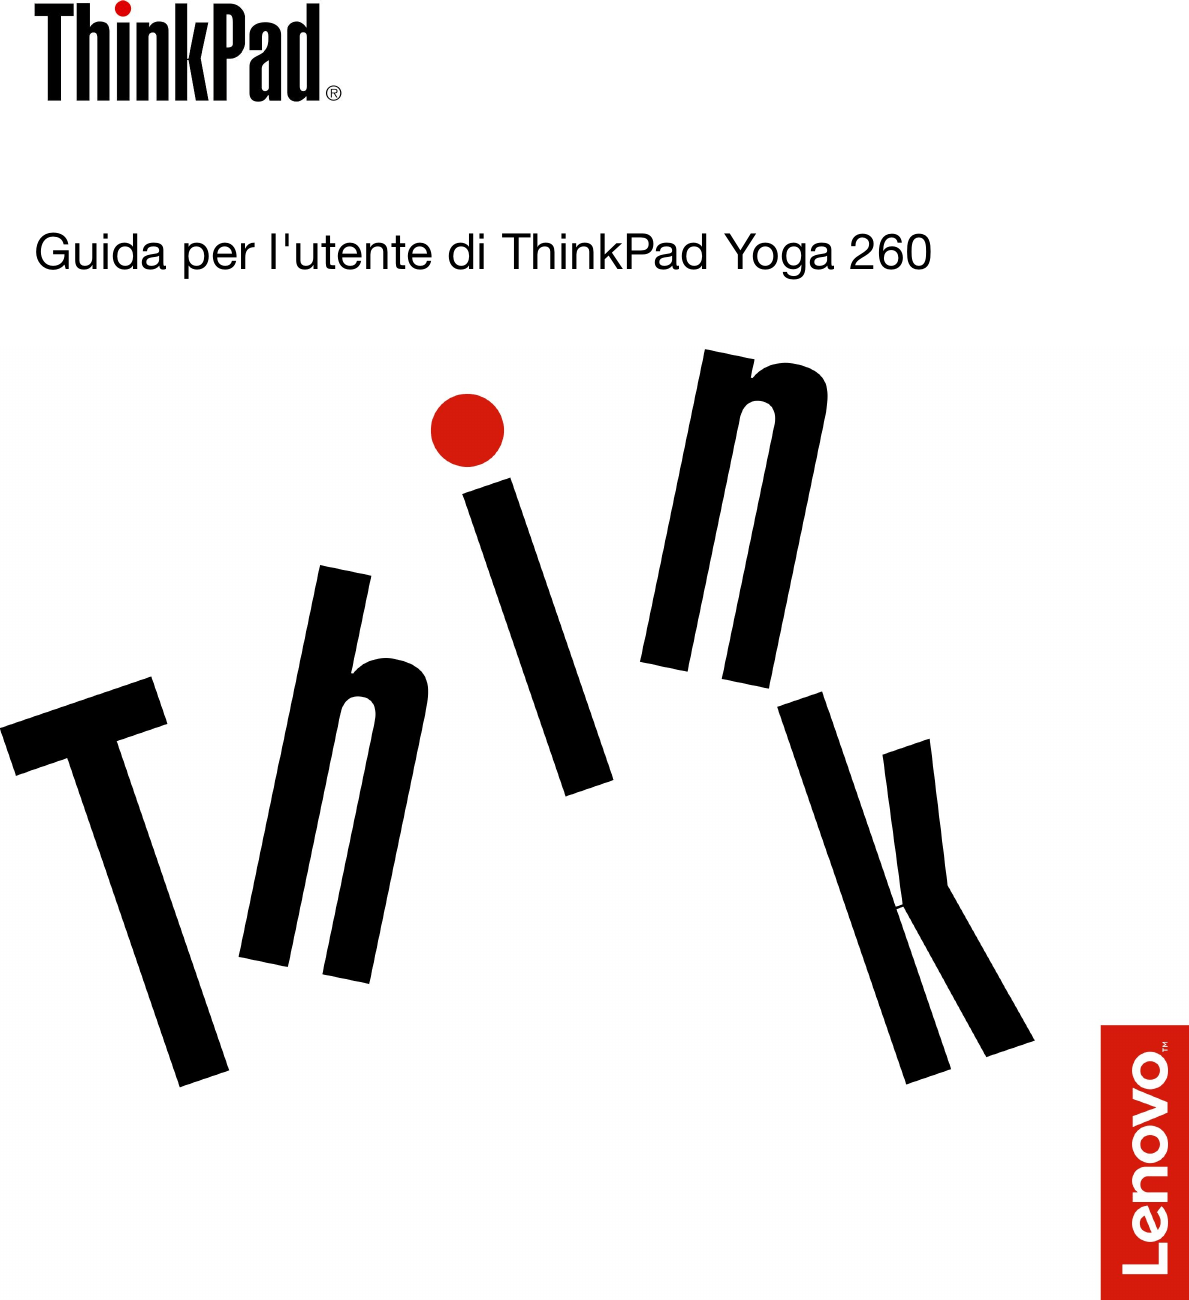 Lenovo Yoga260 Ug It User Manual (Italian) Guide Think Pad